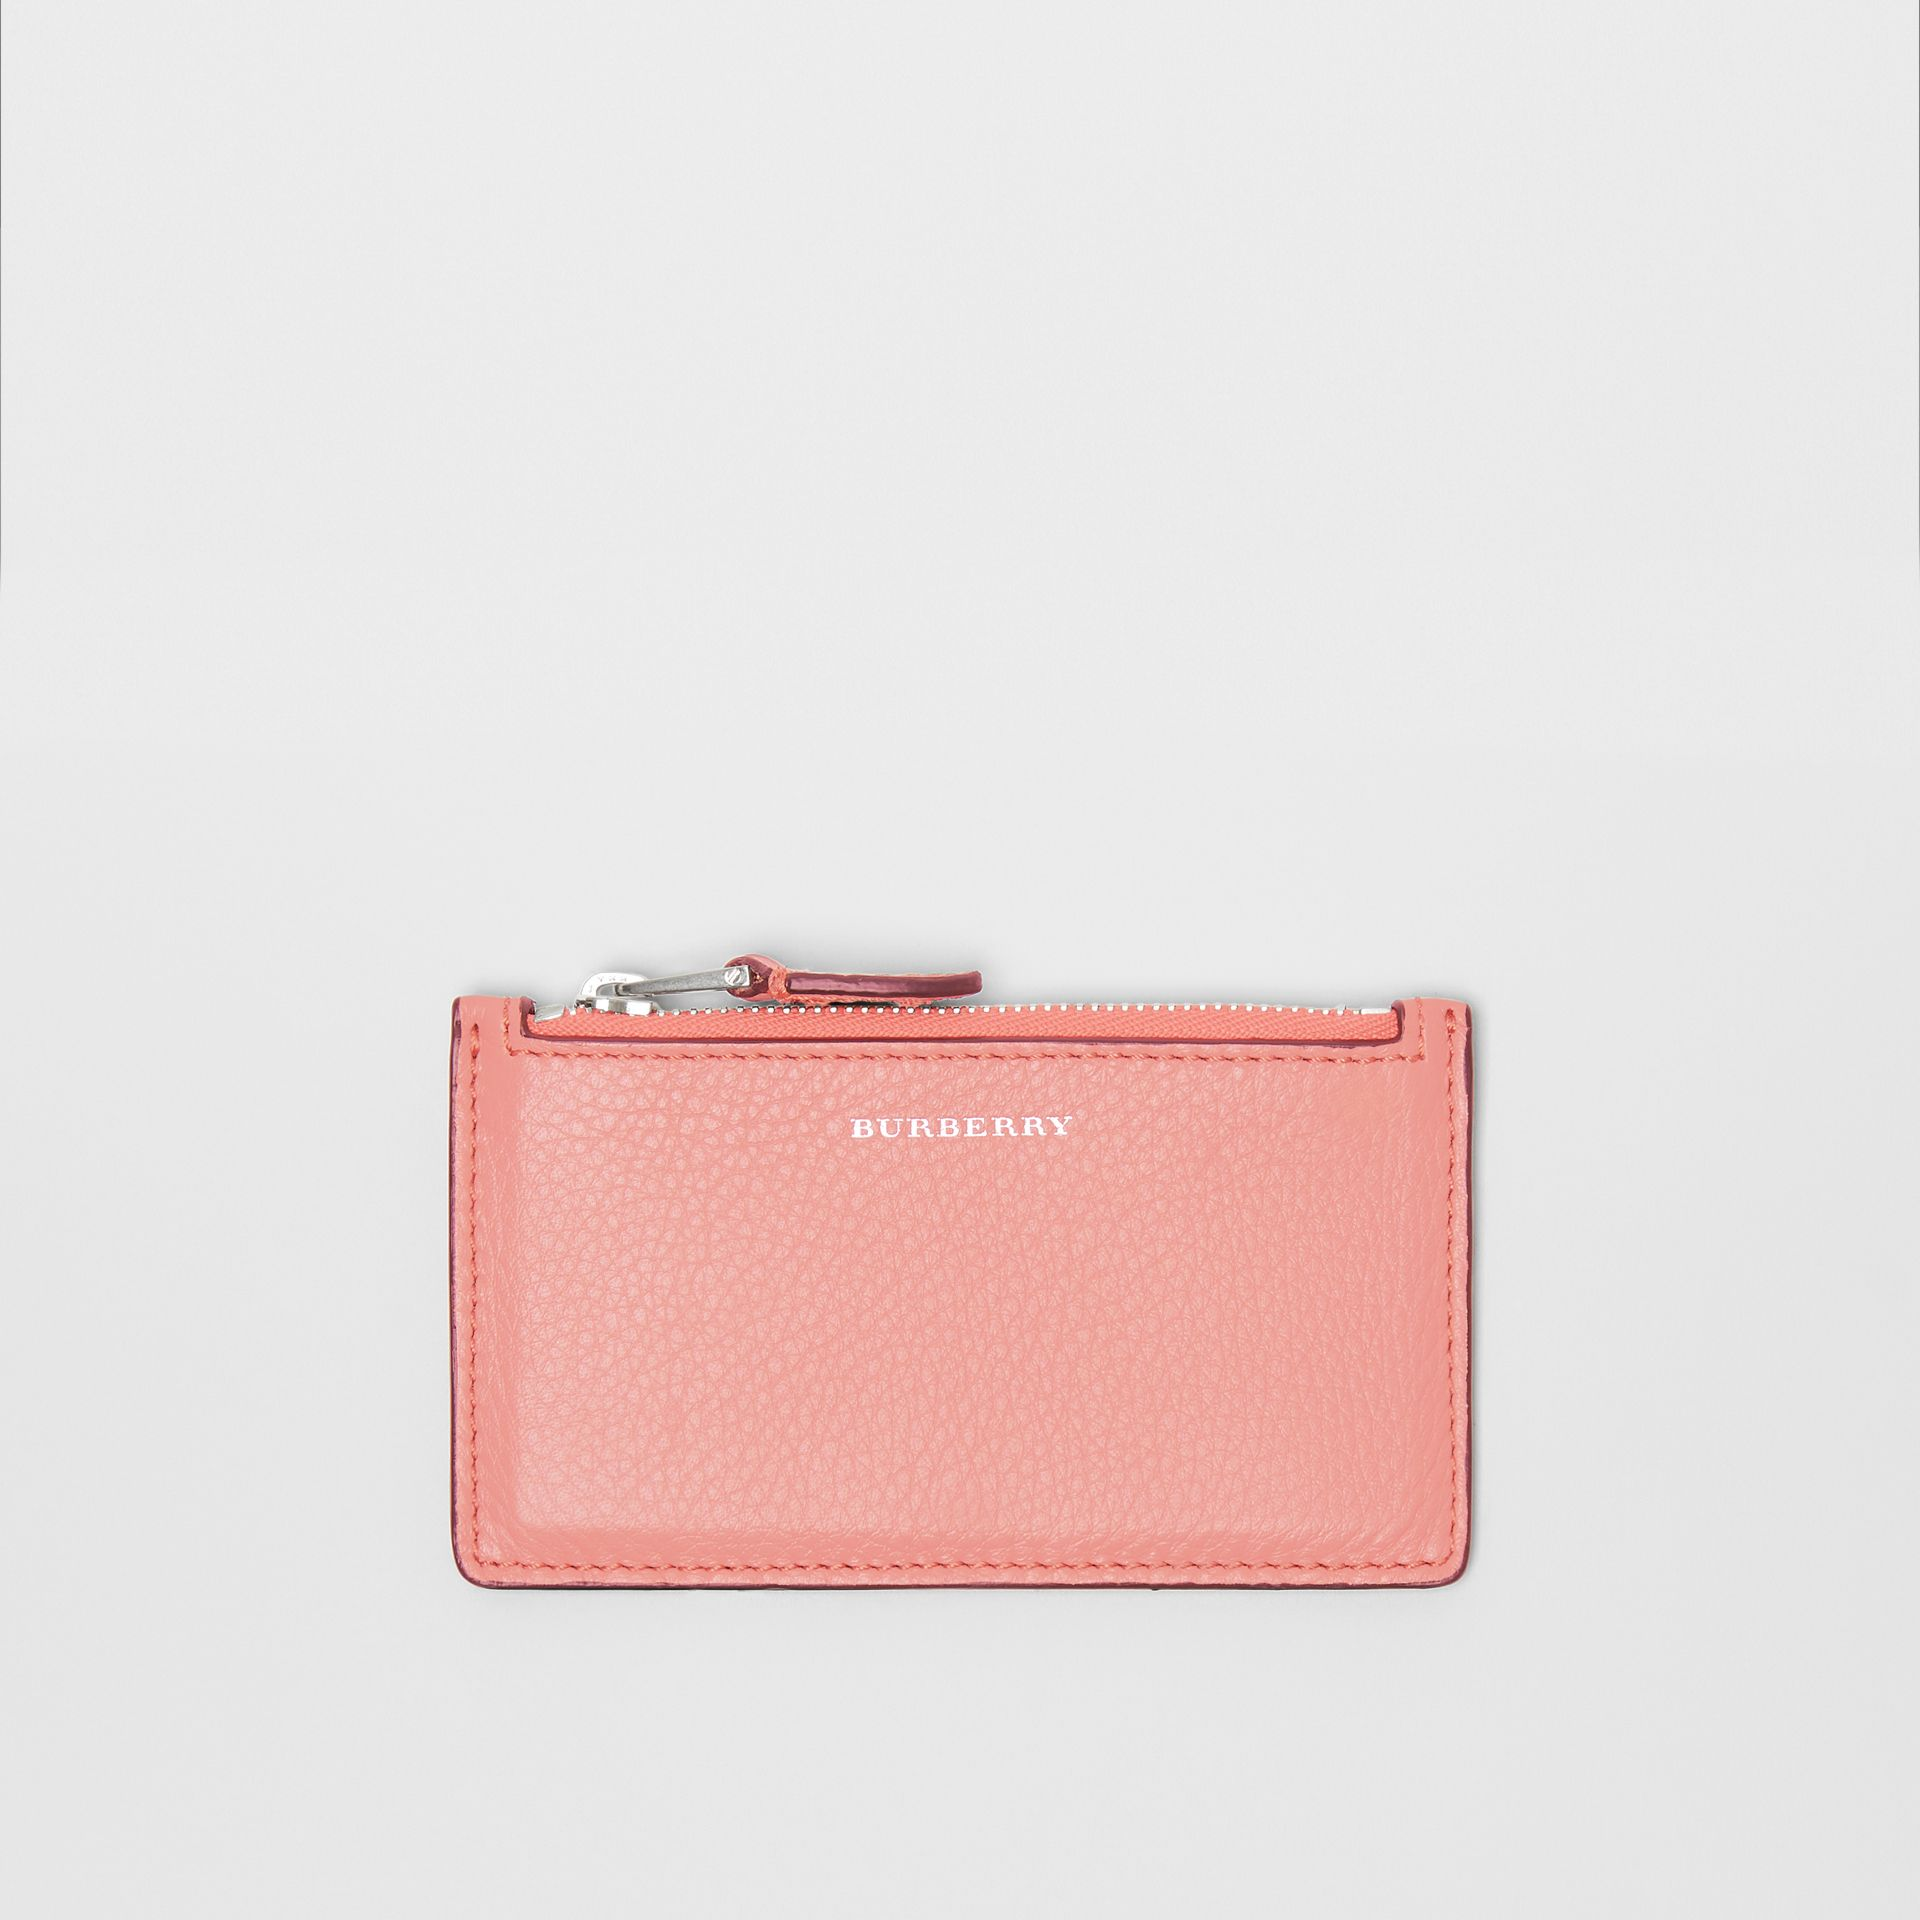 Two-tone Leather Zip Card Case in Dusty Rose - Women | Burberry Singapore - gallery image 0